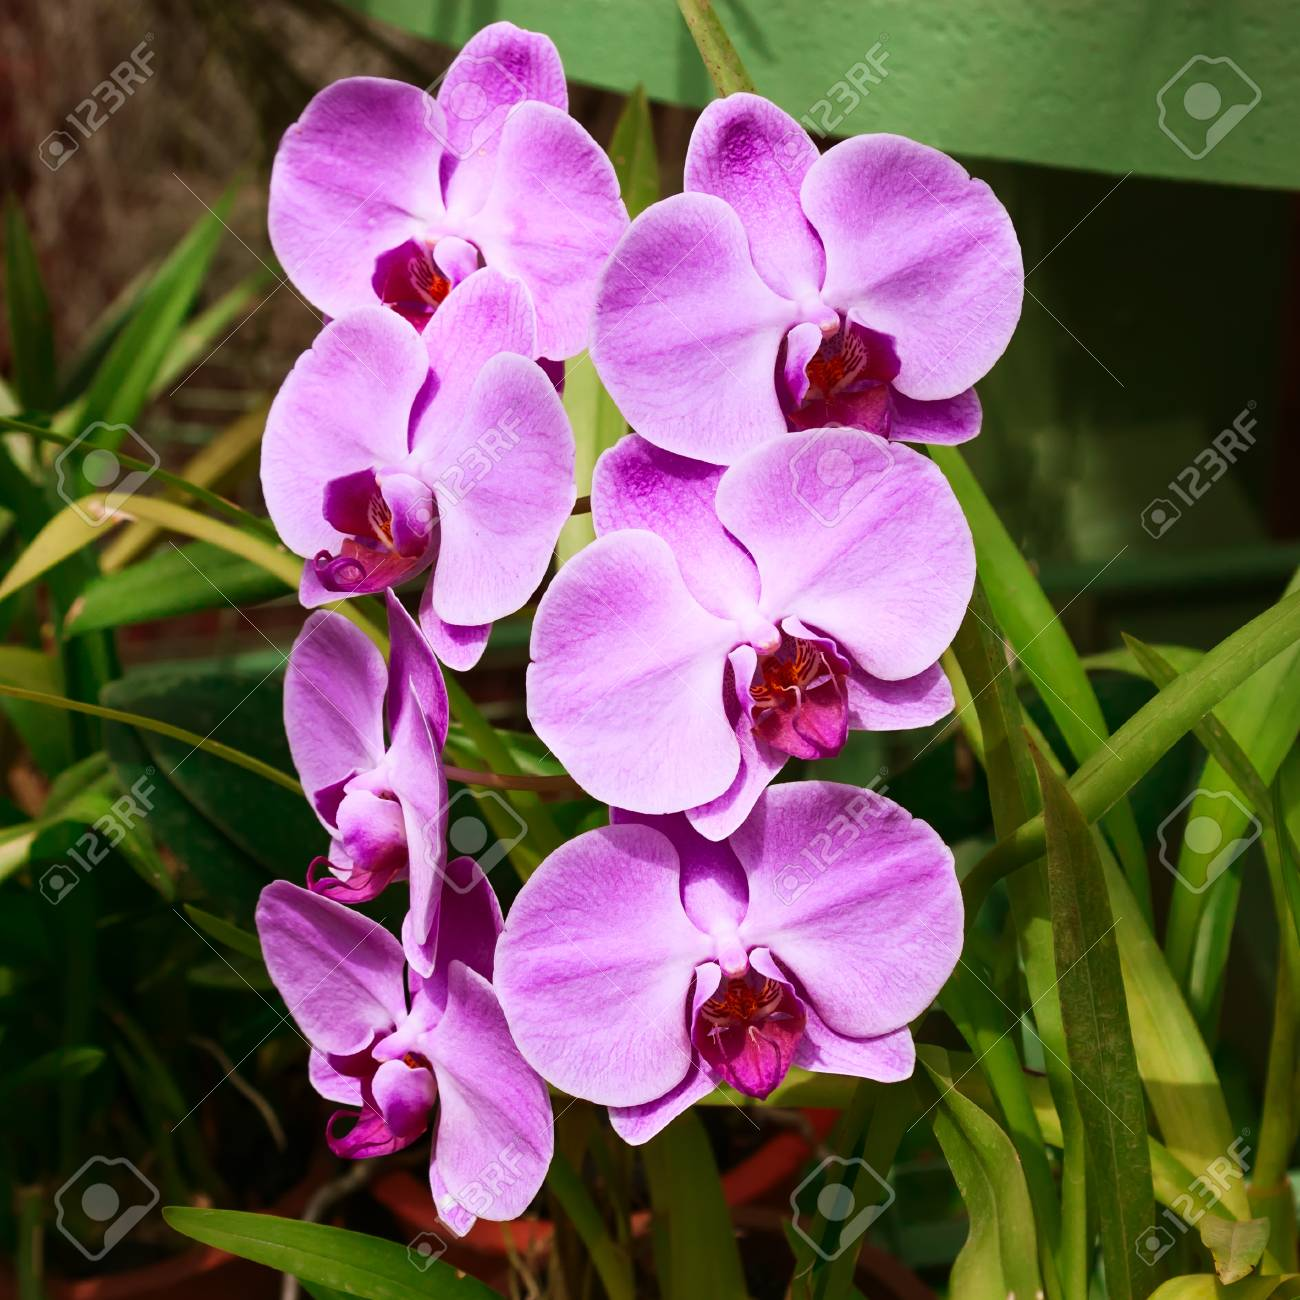 Streaked orchid flowers beautiful orchid flowers stock photo streaked orchid flowers beautiful orchid flowers stock photo 70995586 izmirmasajfo